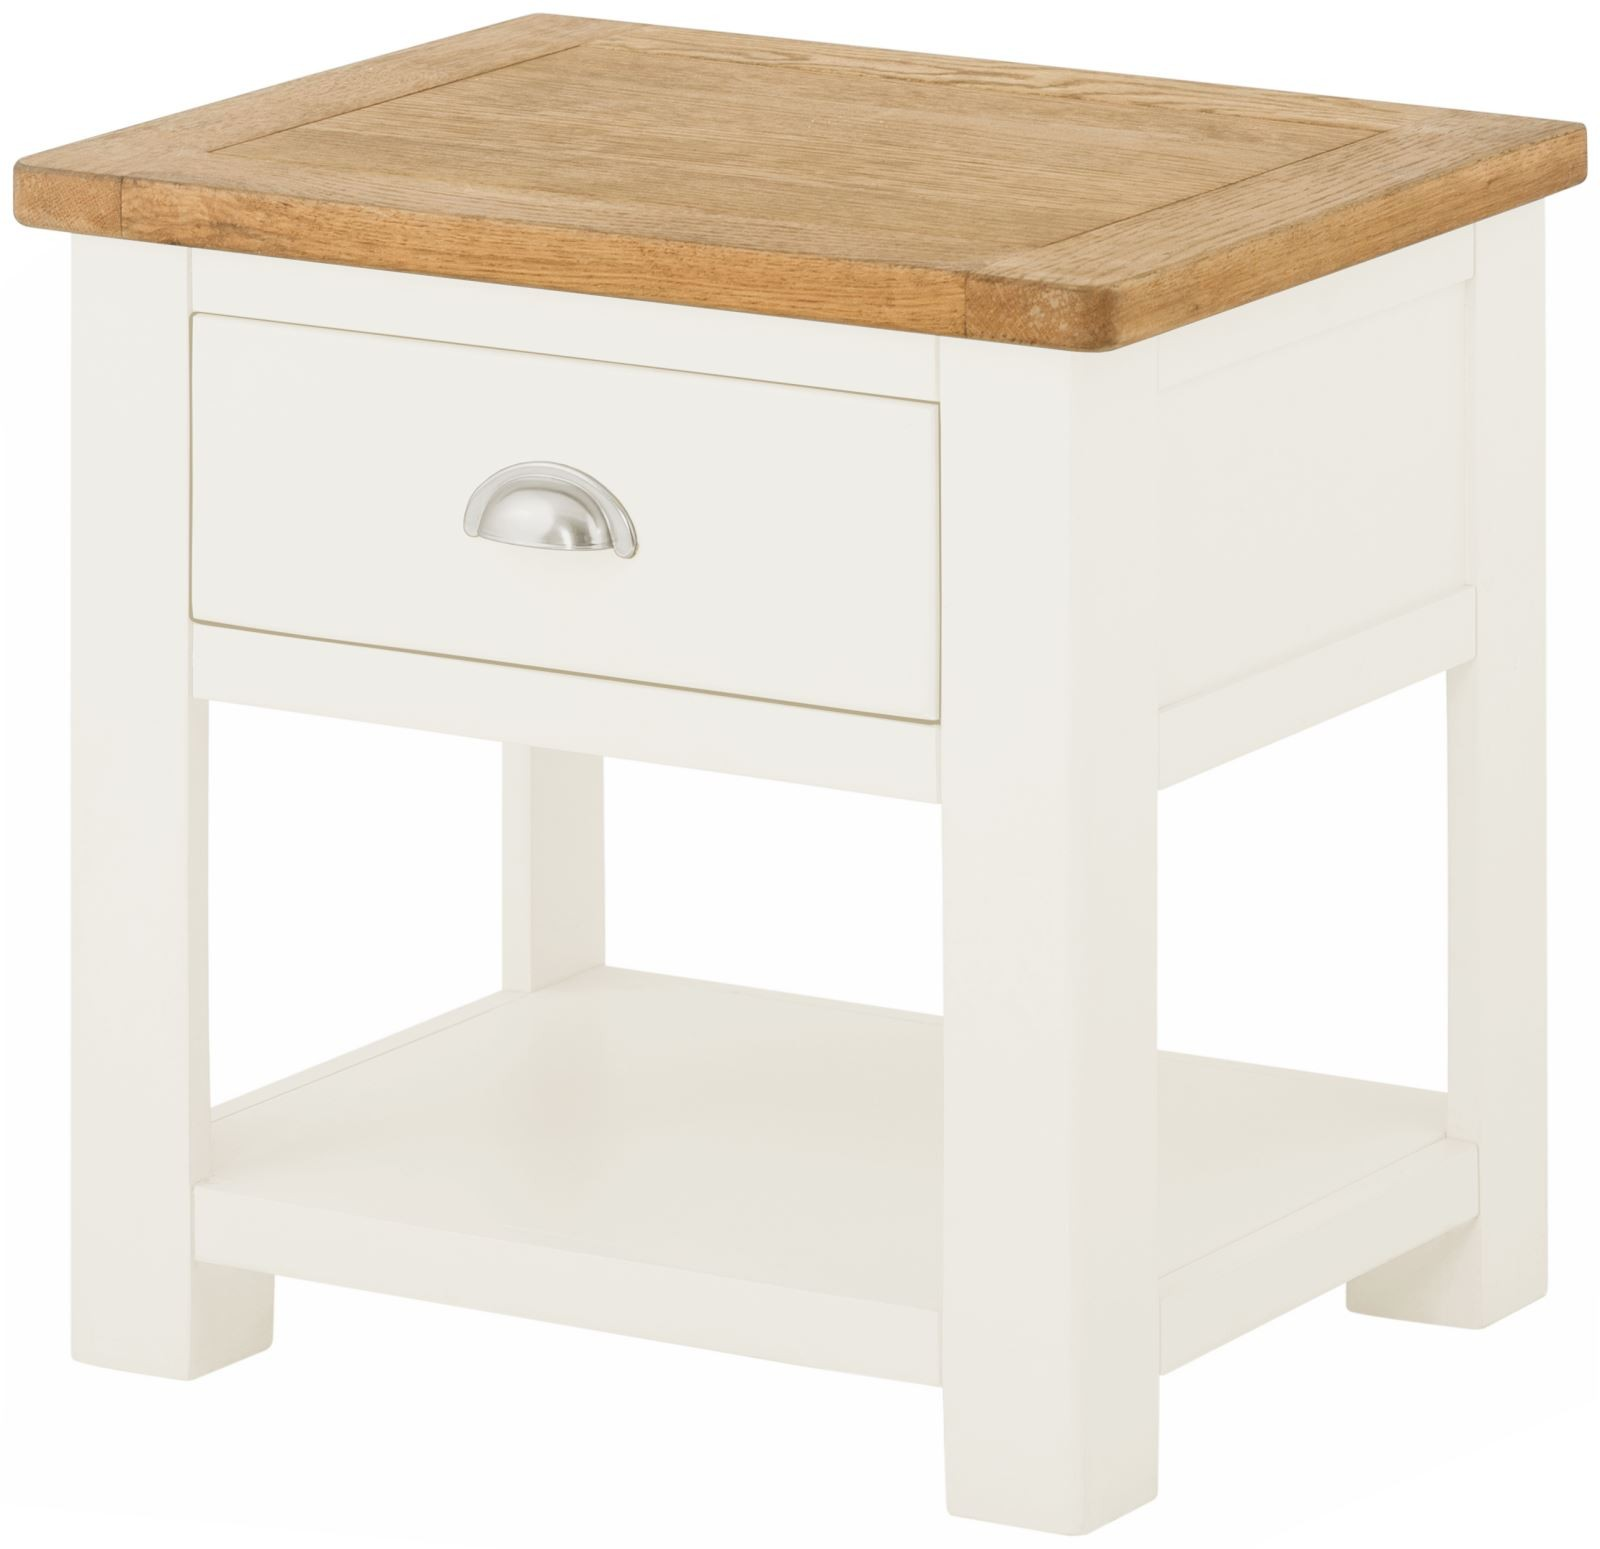 PRESTON Lamp Table with Drawer